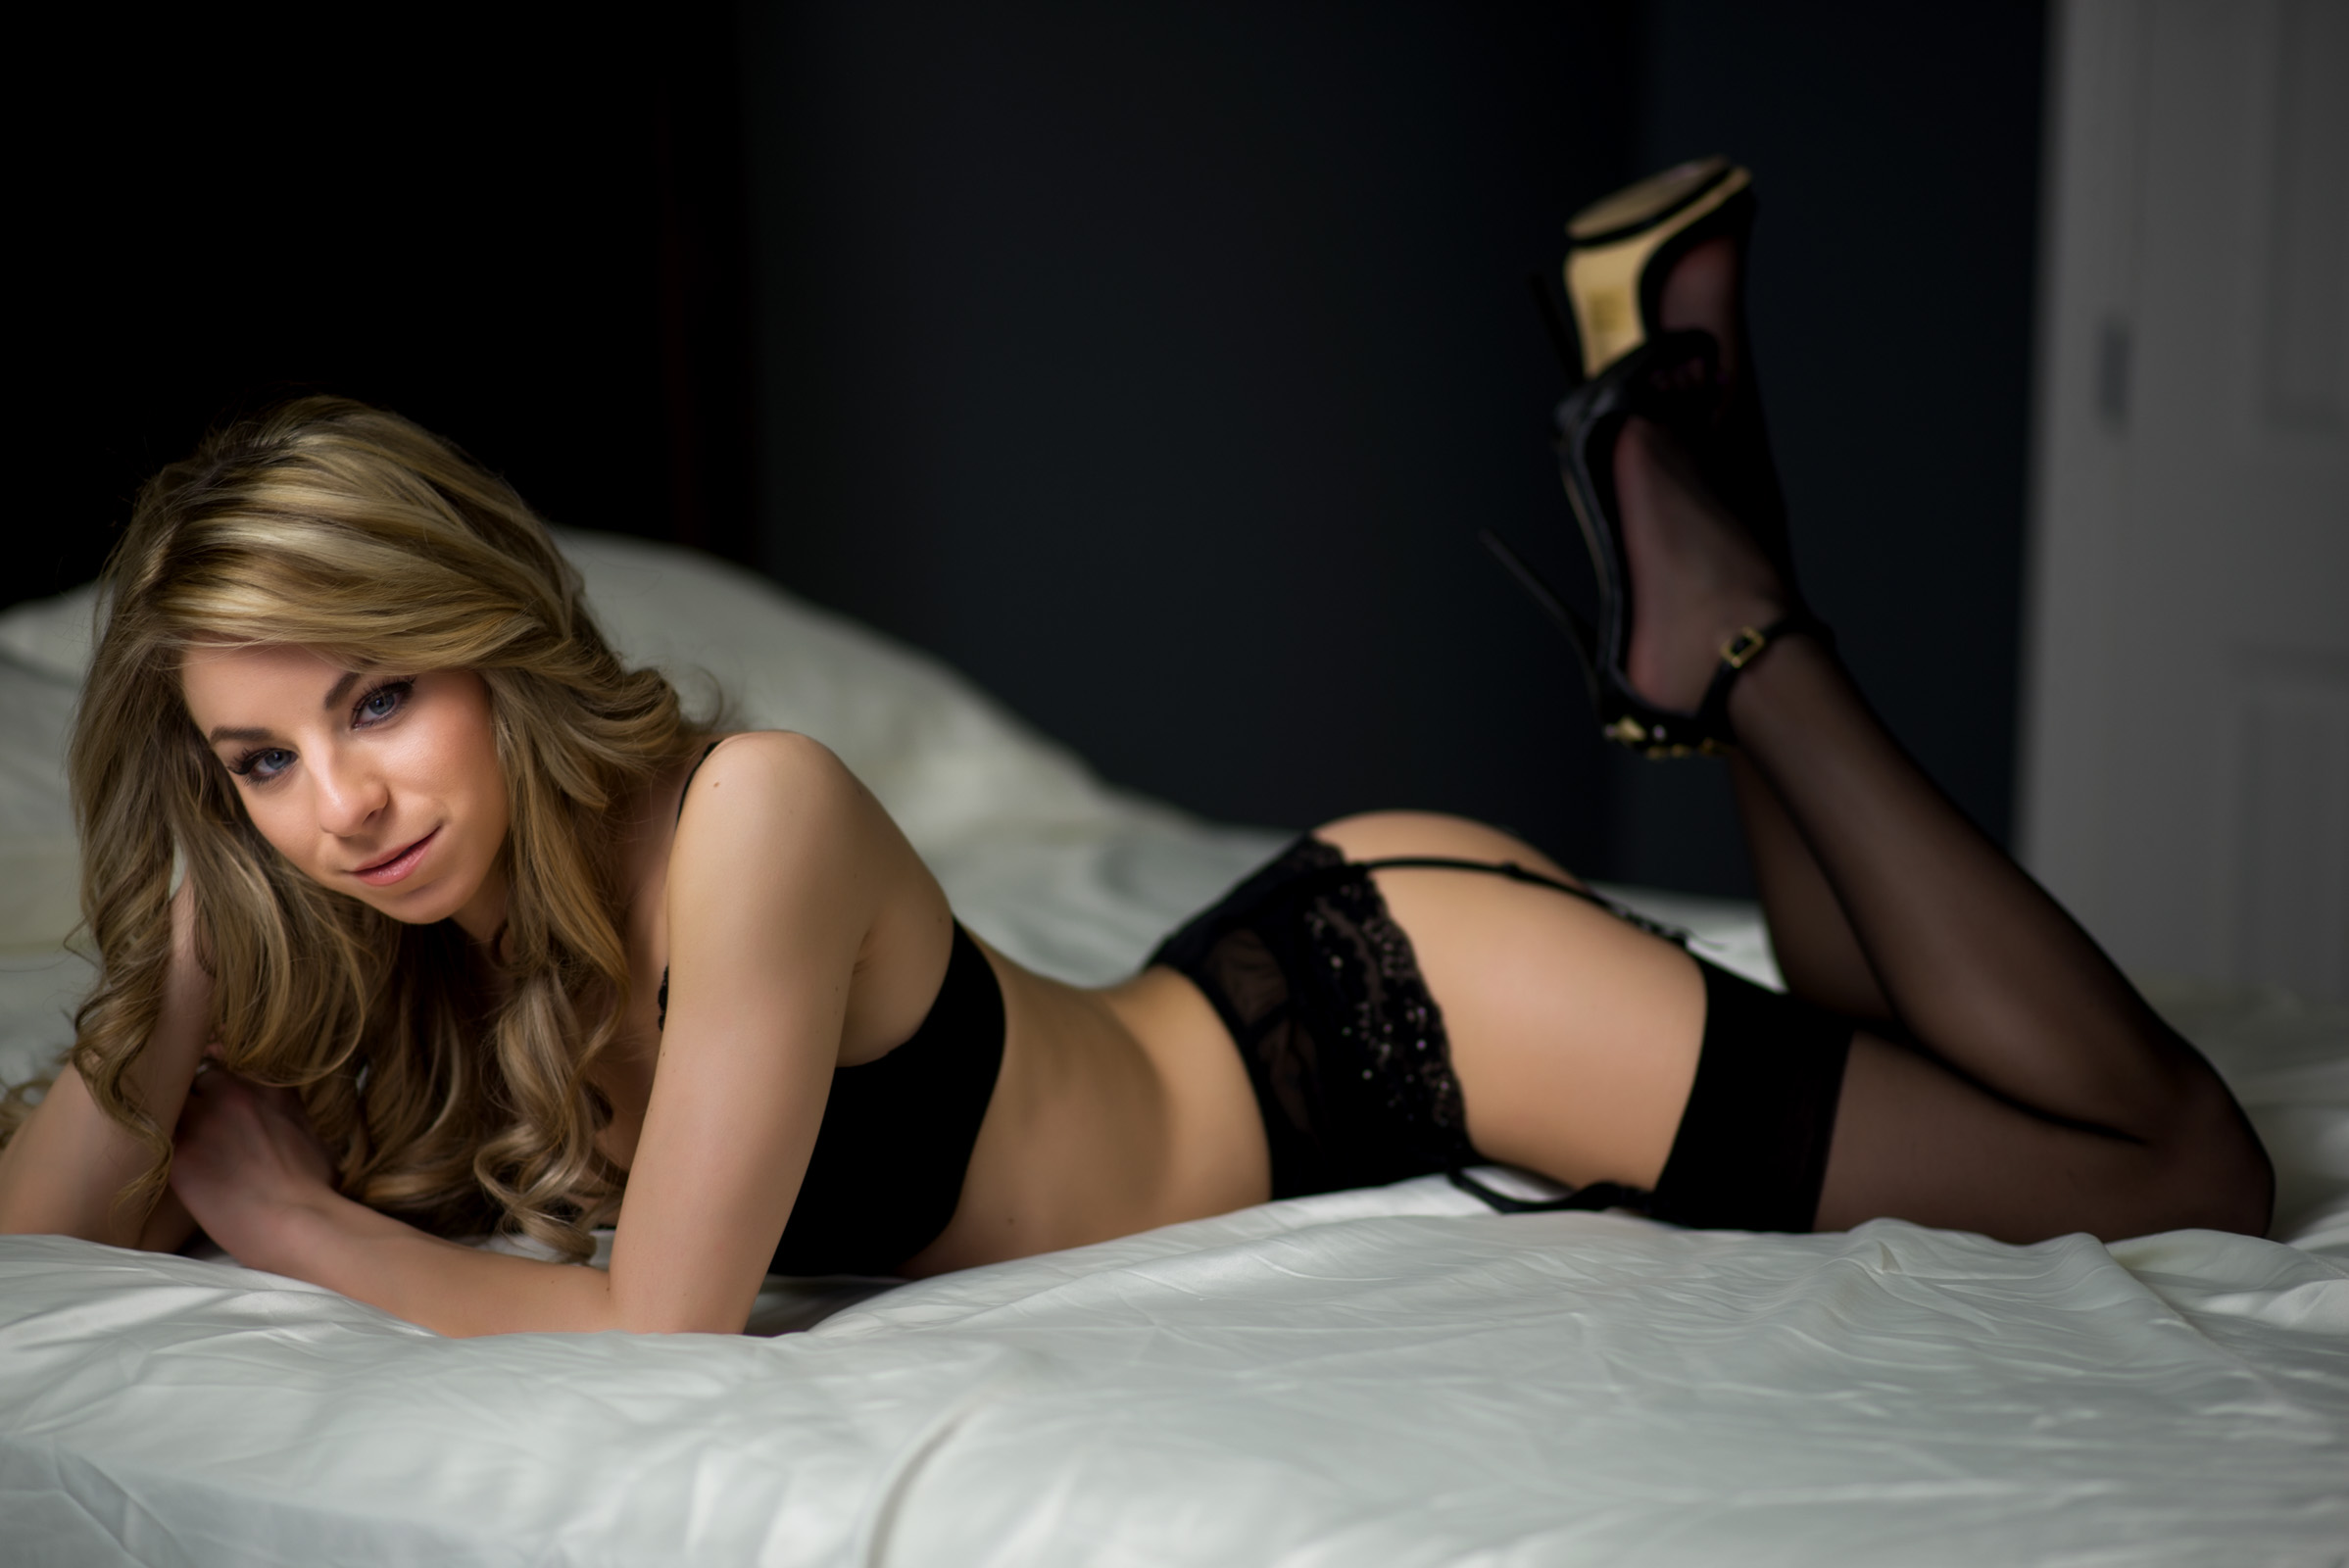 boudoir photography by Sean